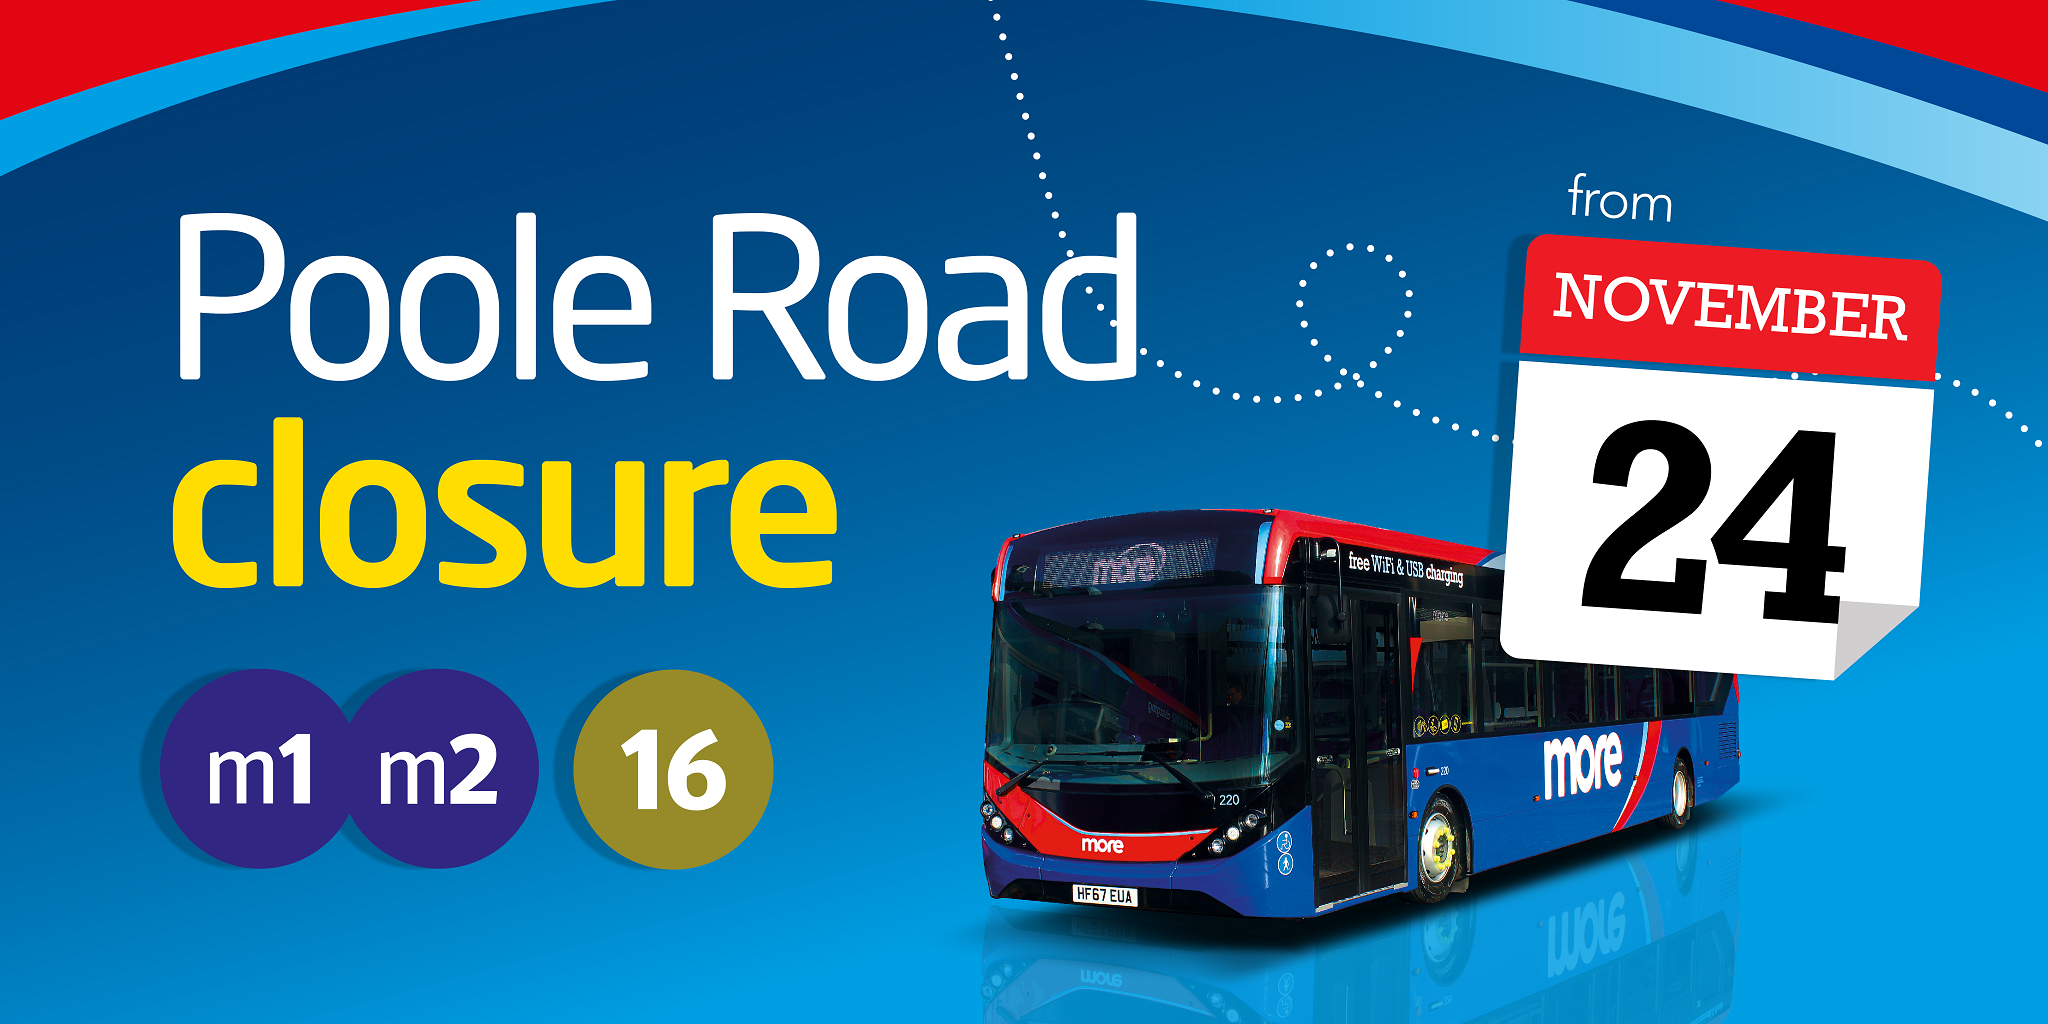 Image reading 'Poole Road closure from November 24th'